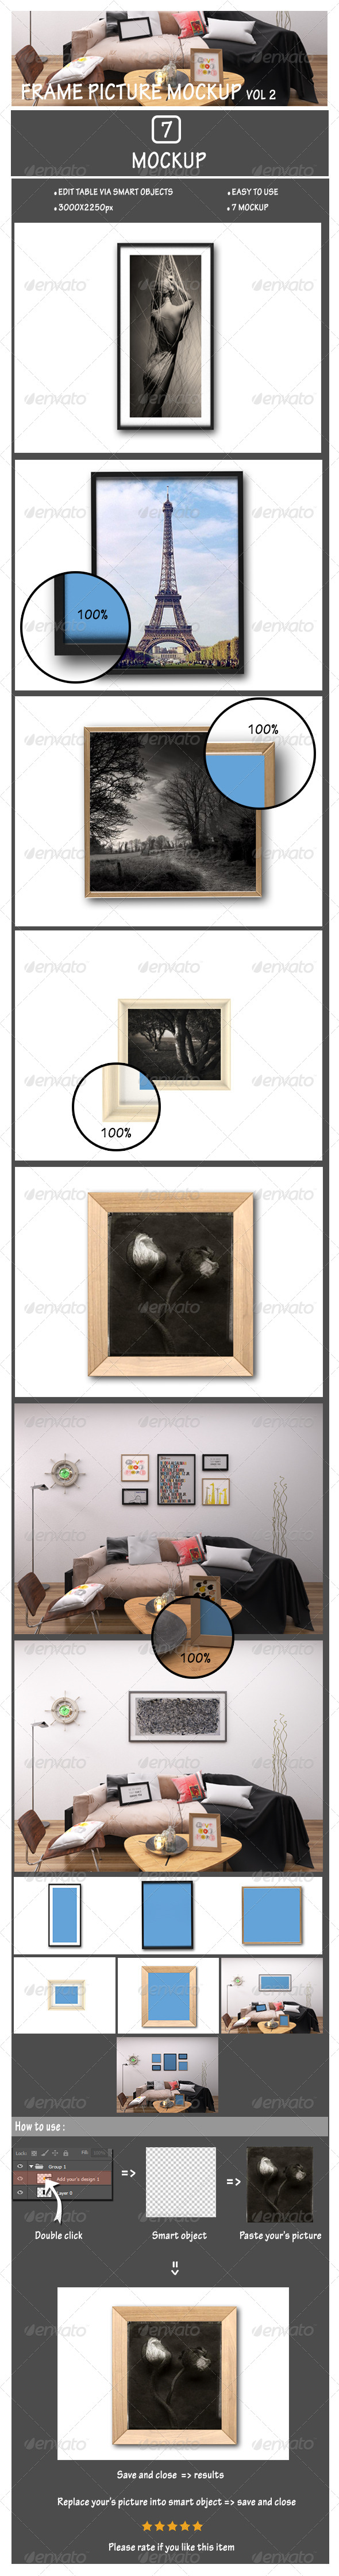 Frame Picture Mockup Vol2 - Posters Print